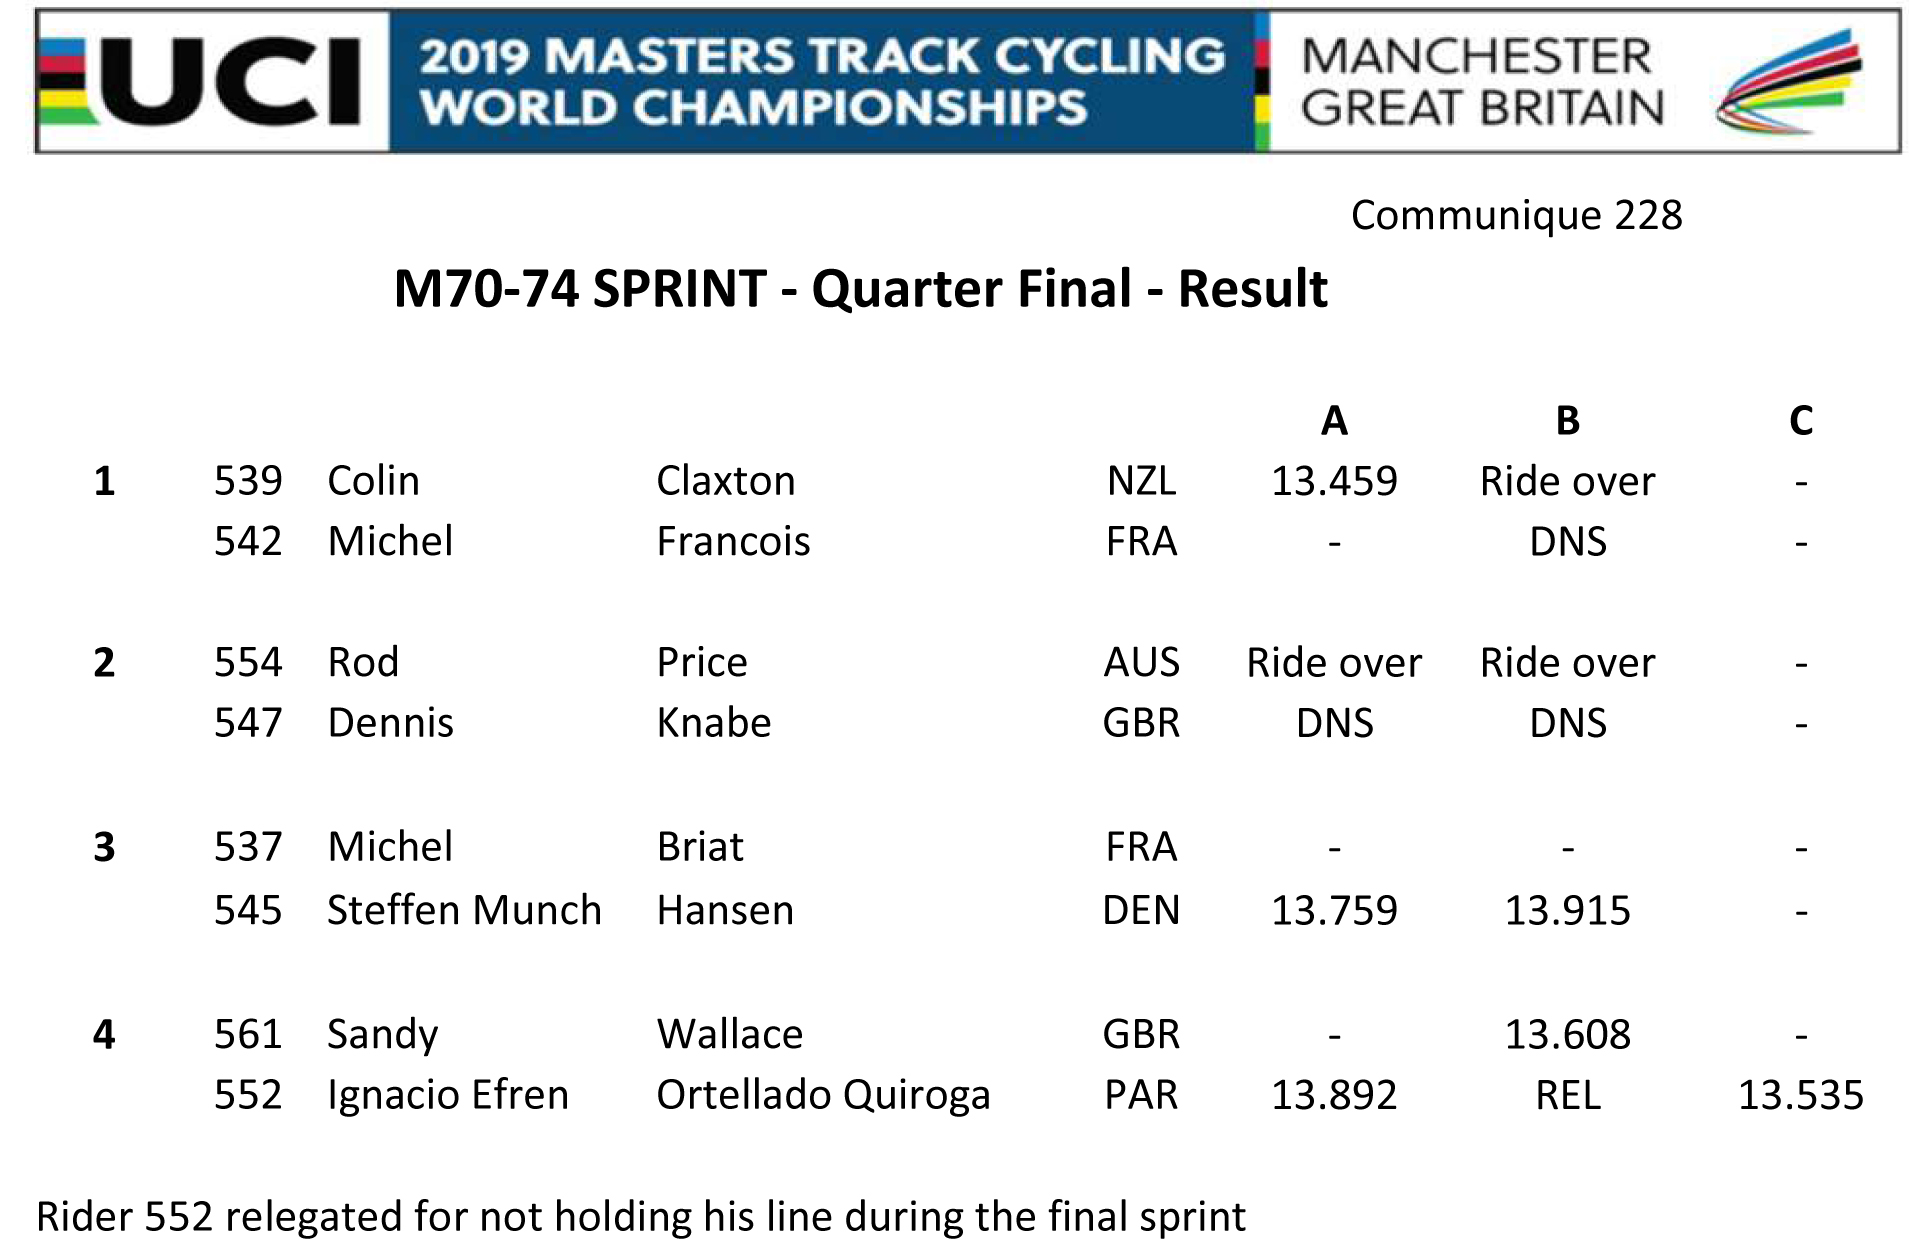 M7074 SPRINT QUARTER FINAL RESULT